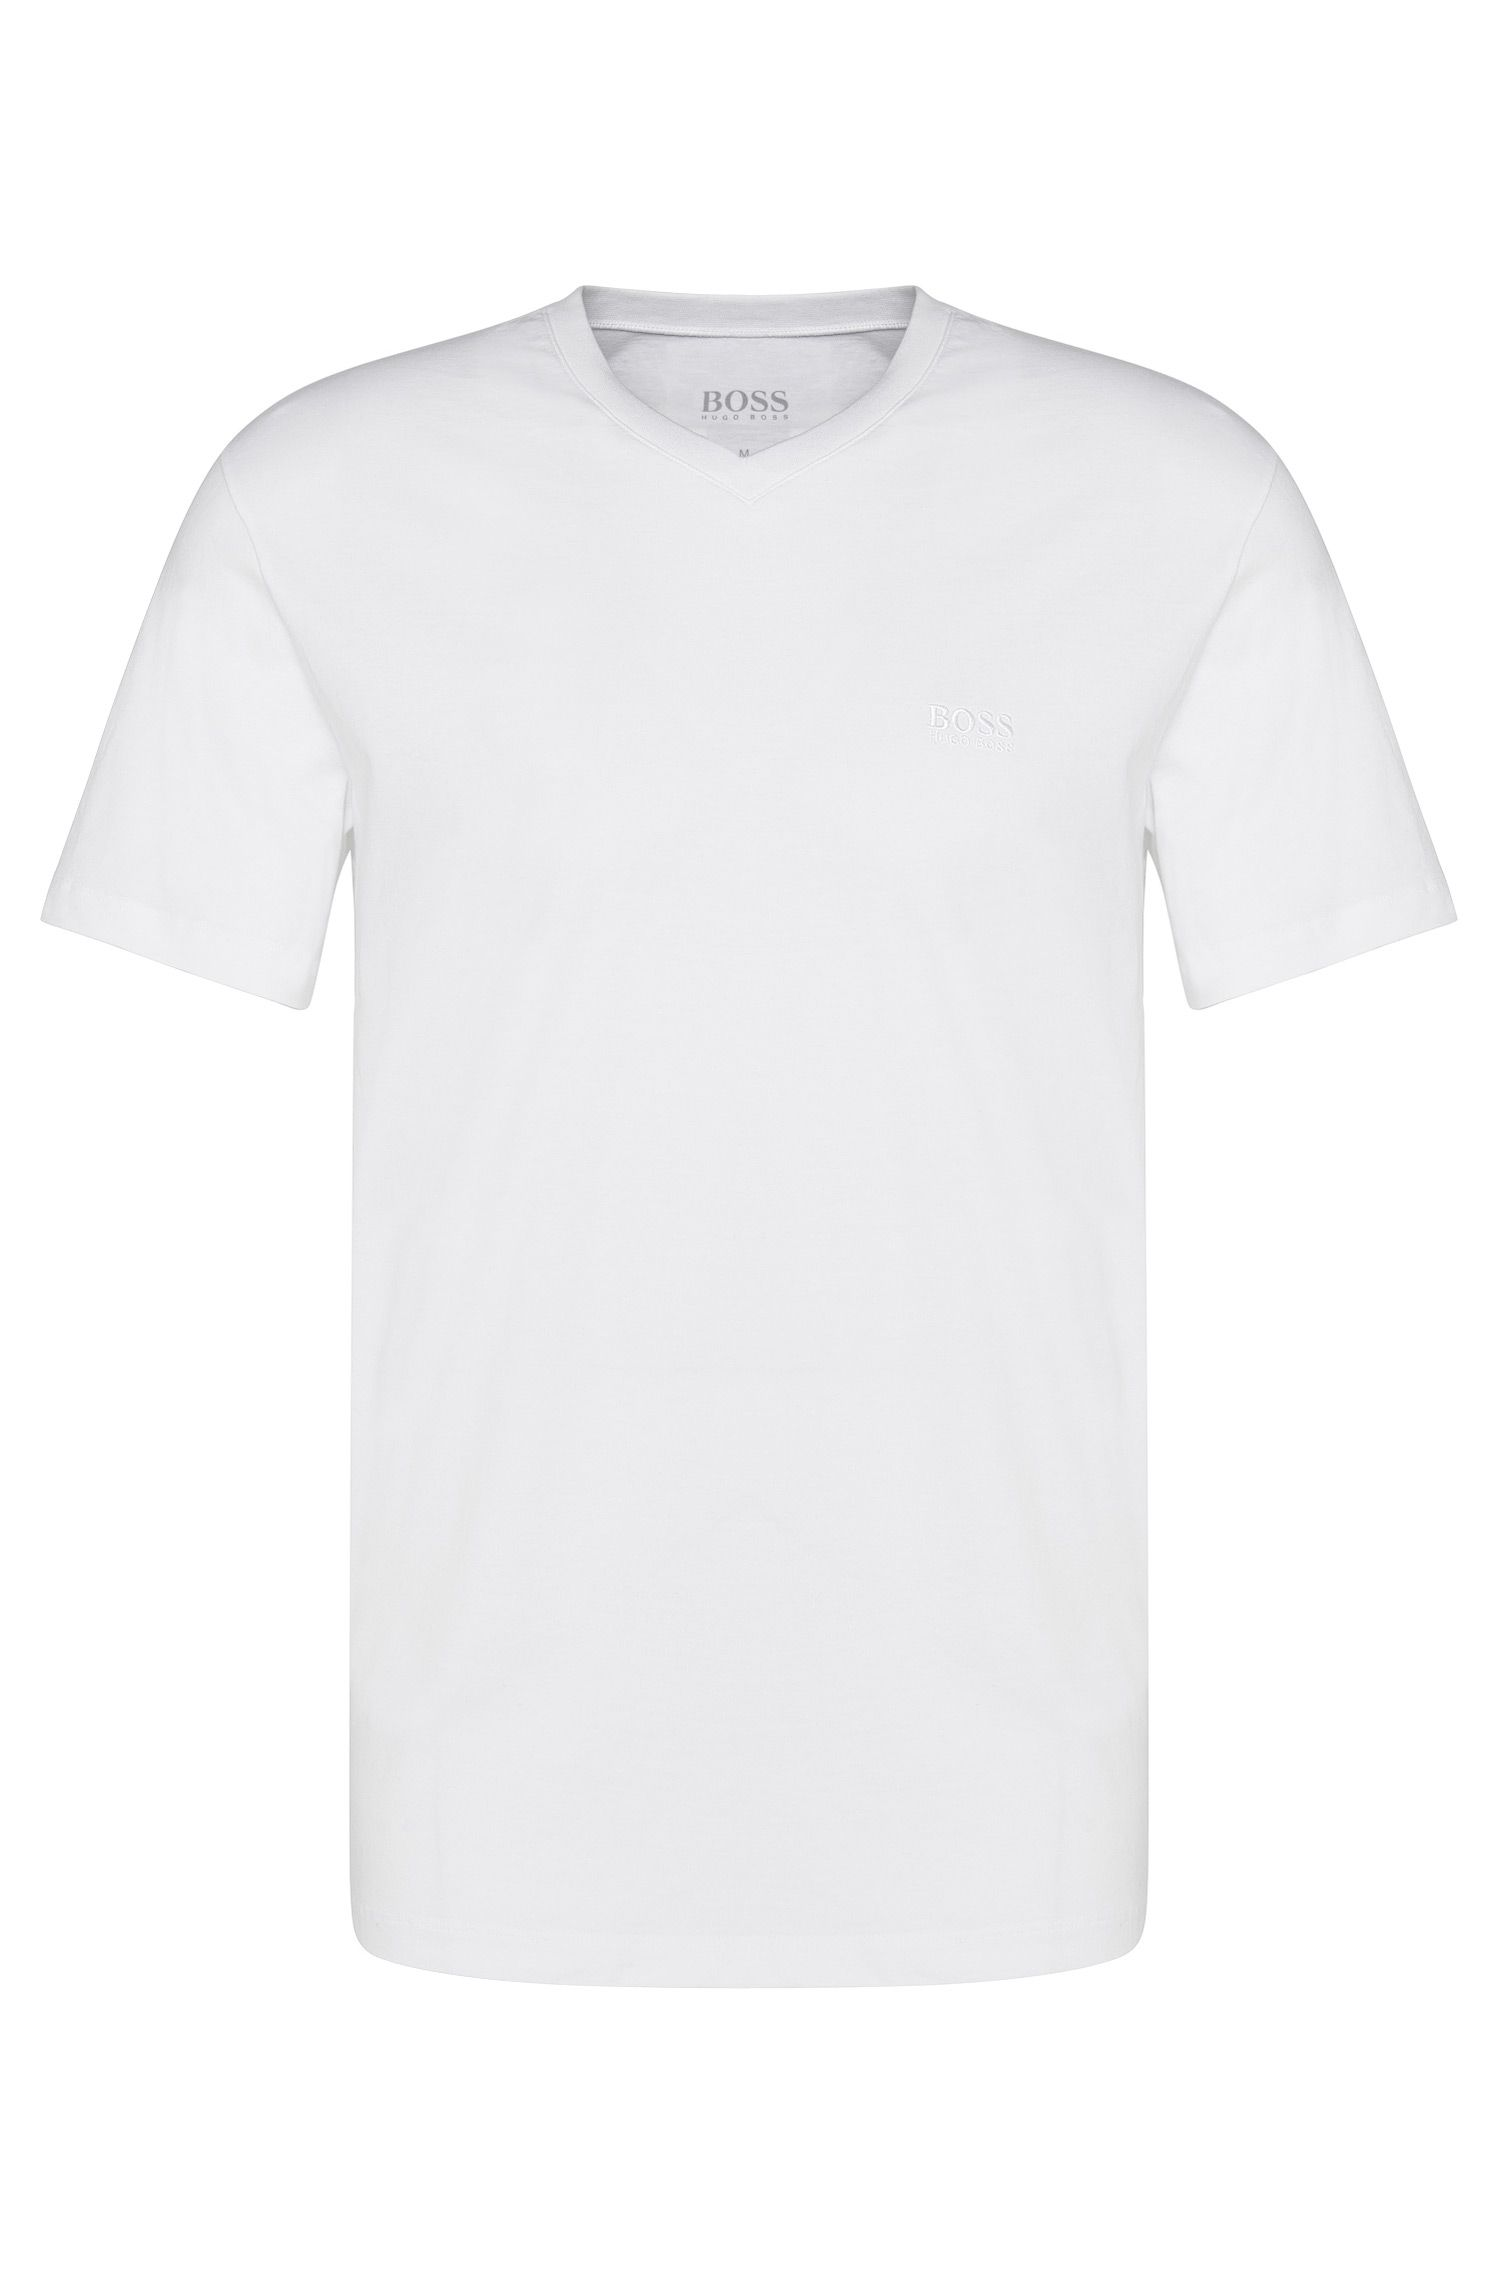 T-shirt Regular Fit en lot de deux, en pur coton